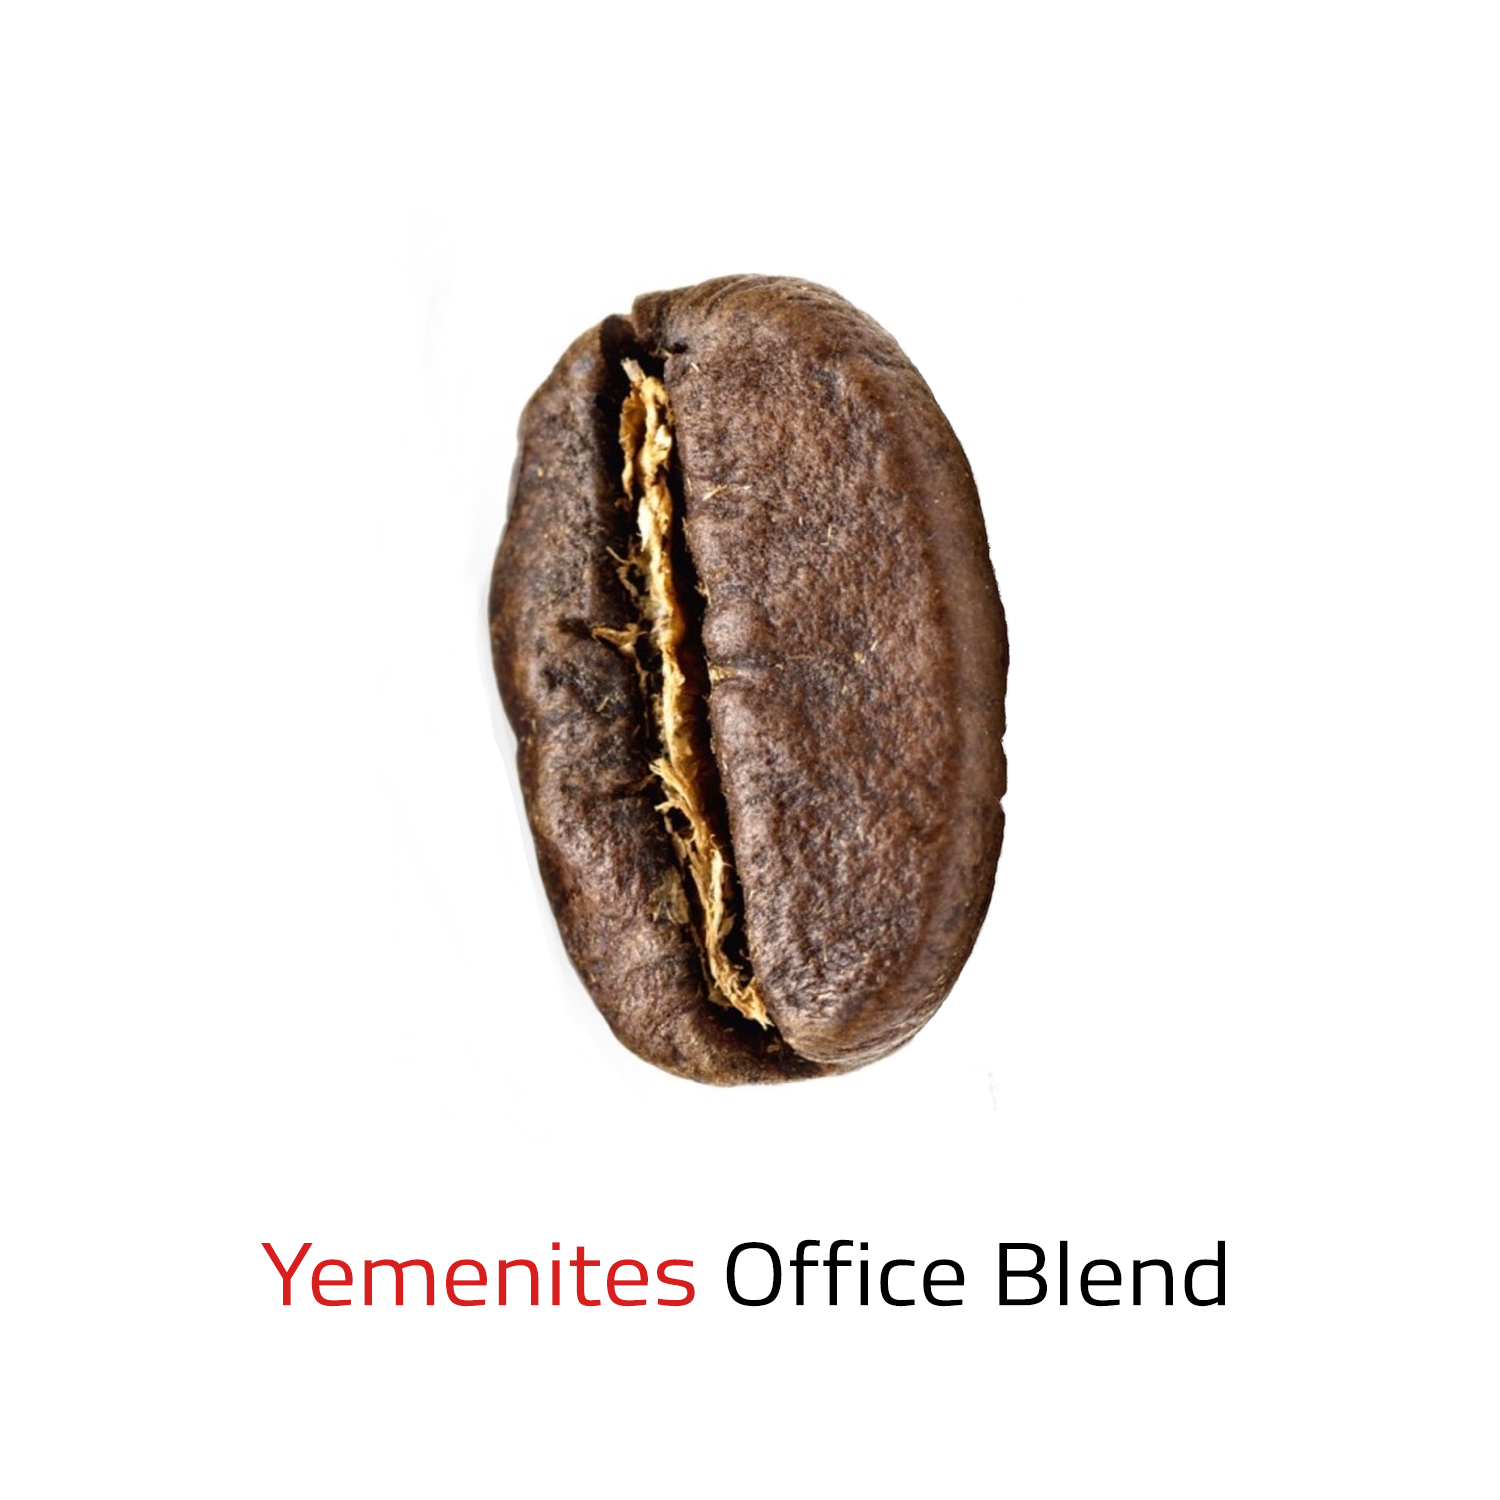 Yemenites Office Blend 1kg